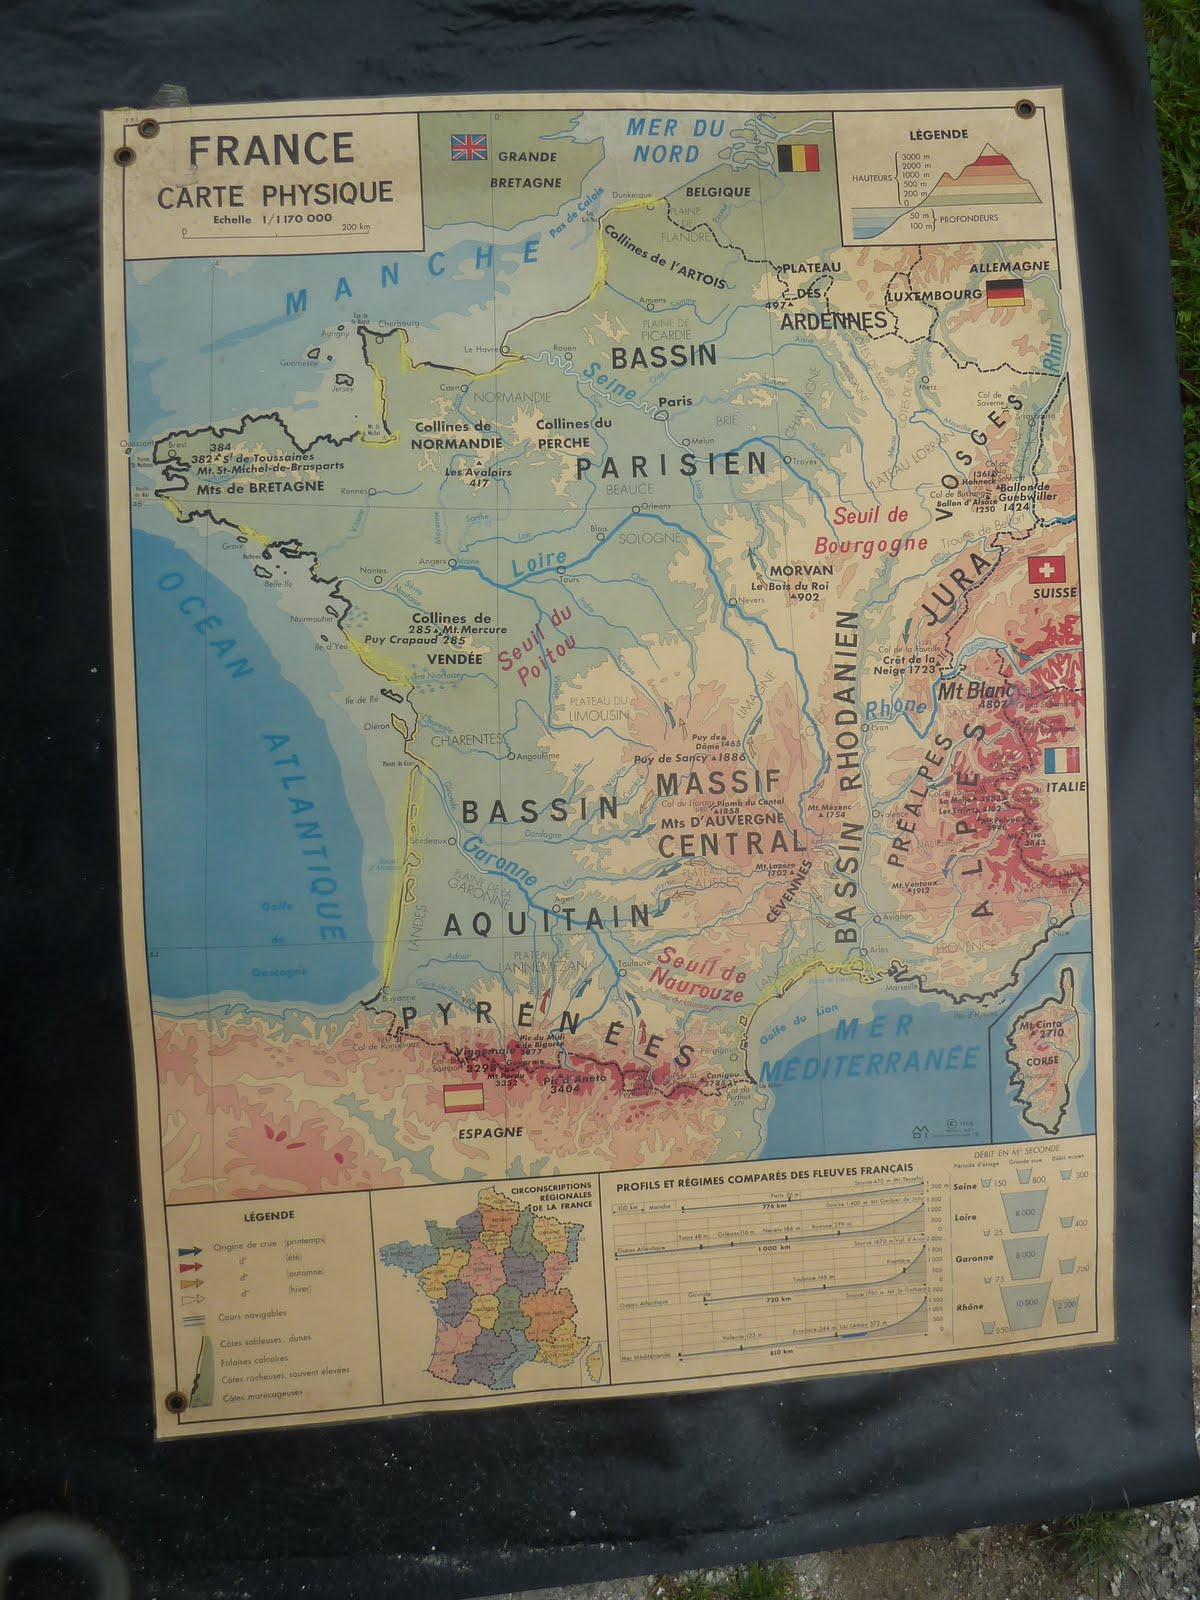 Map Of France Poster.Vintage French Posters Botany Animals Anatomy Old World Maps From